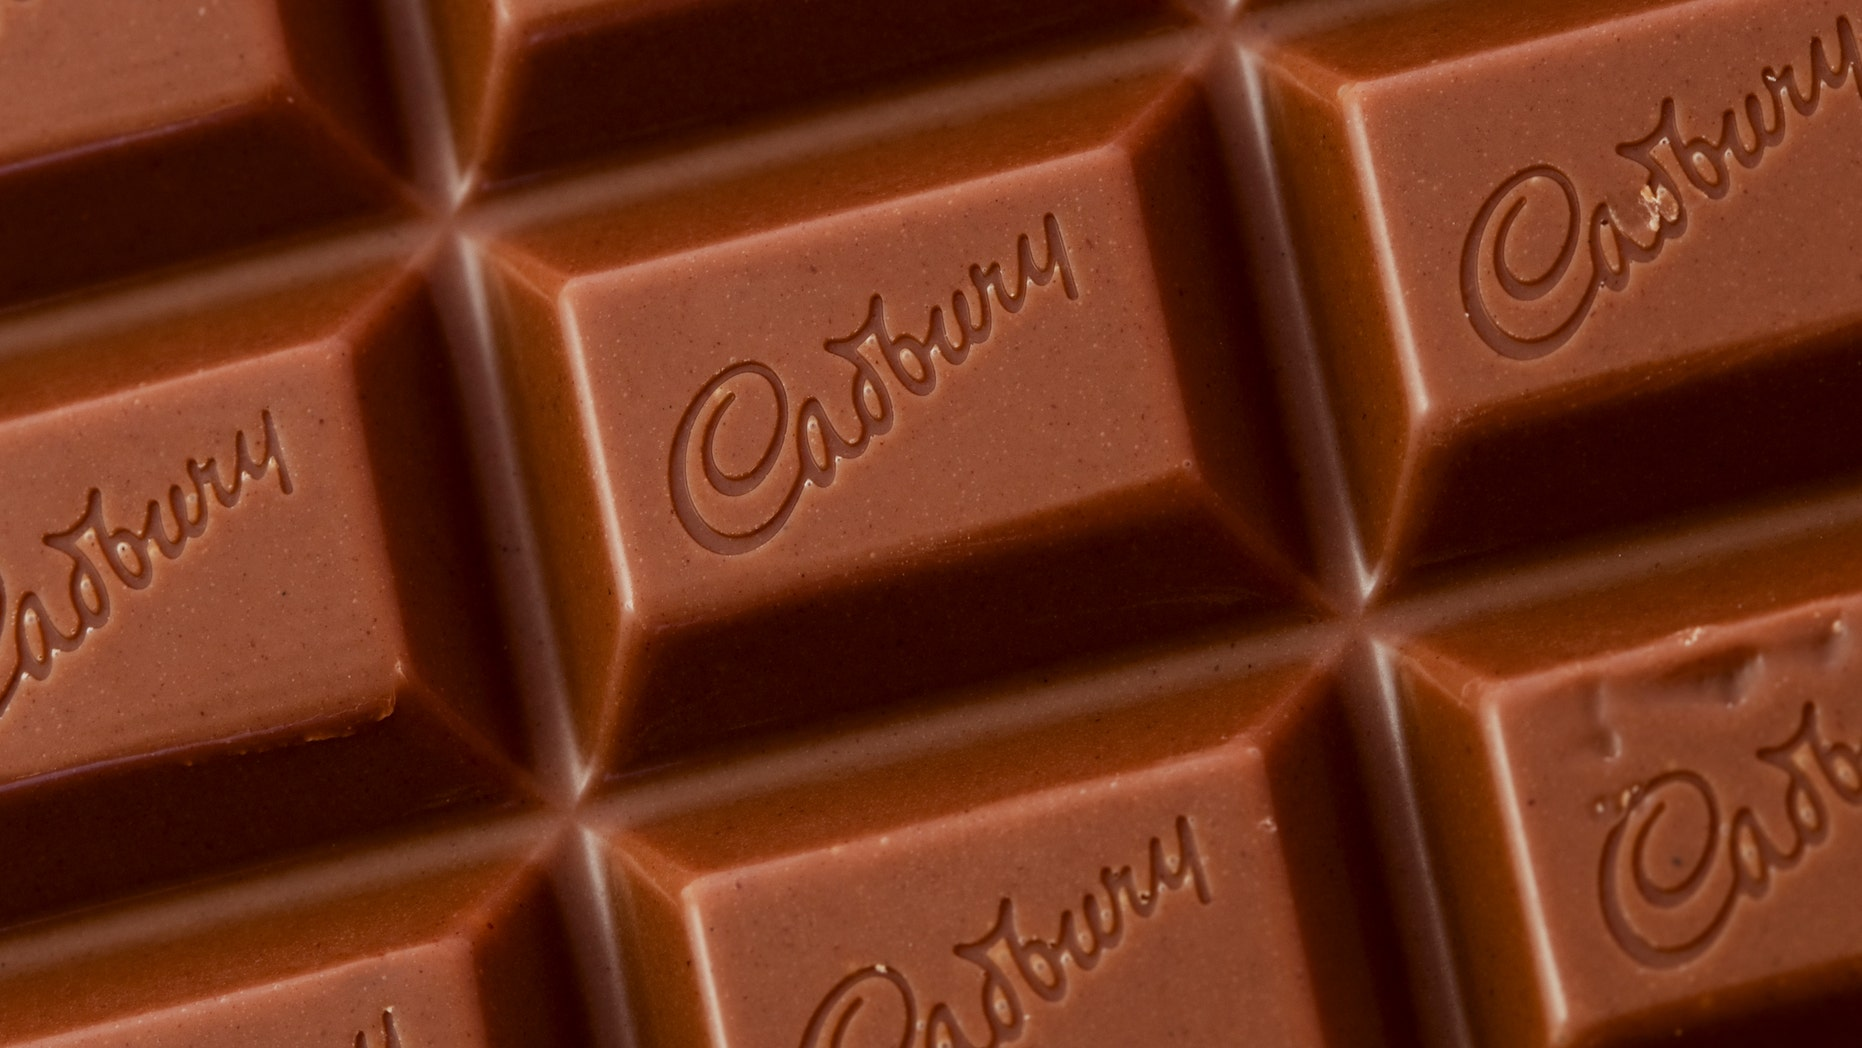 """The campaign, which was centered around Cadbury's Freddo's Treasure's chocolates, suggested that customers go on a """"real treasure hunting adventure"""" at historical sites."""